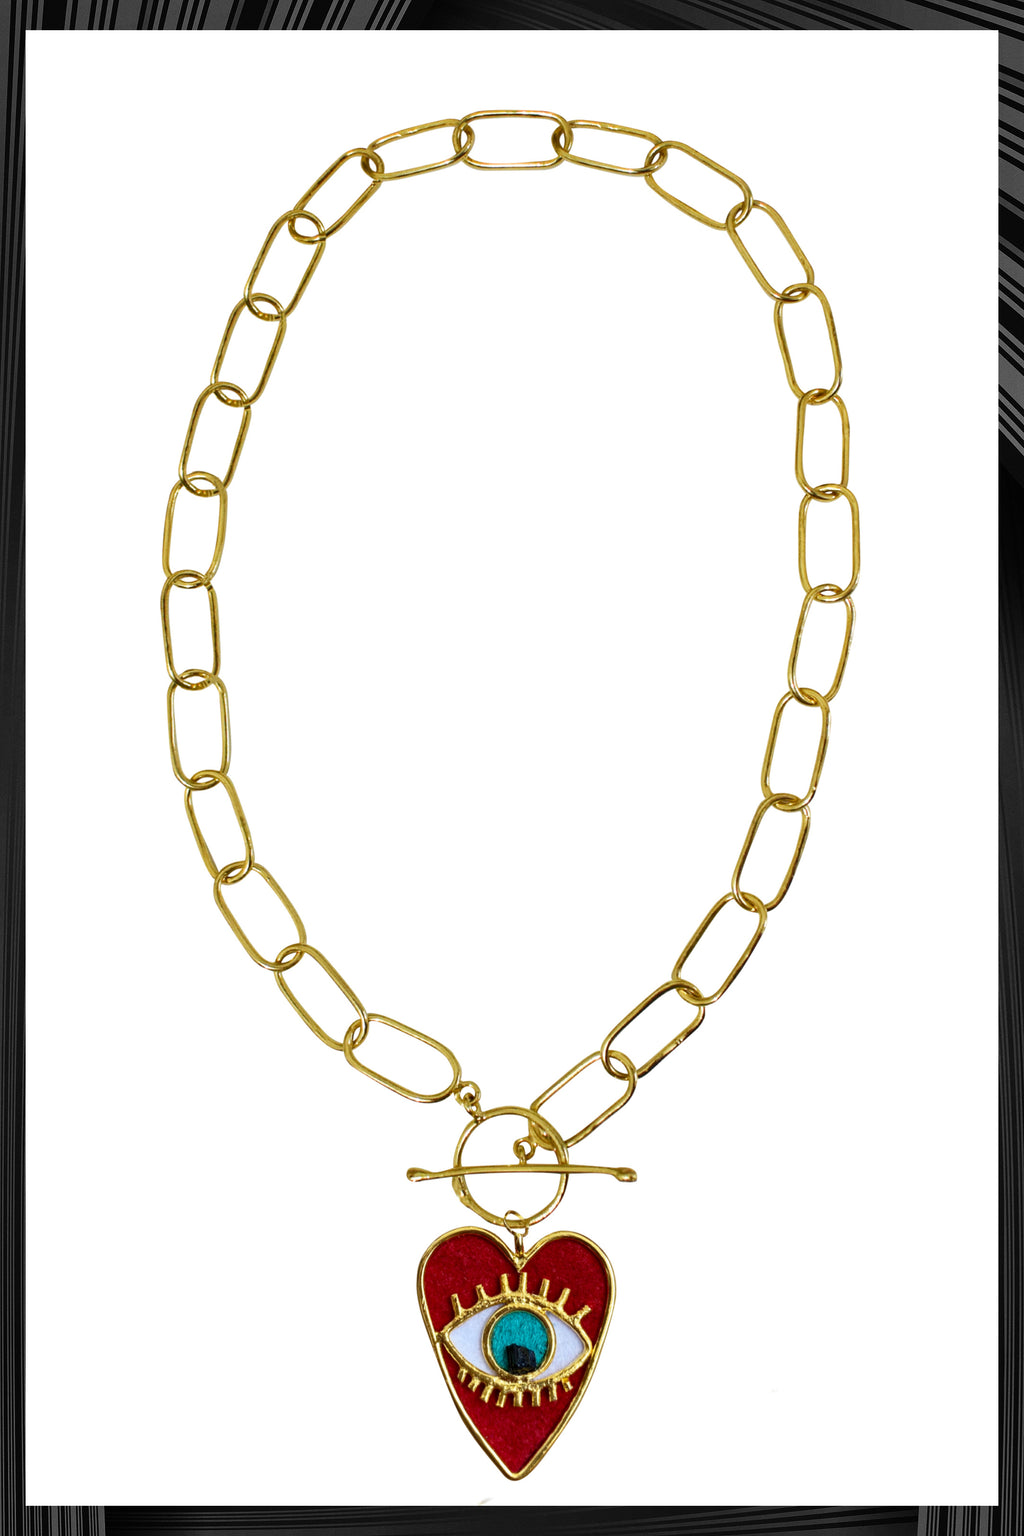 Heart Eye XL Link Chain Necklace | Free Delivery - 3 Week Shipping